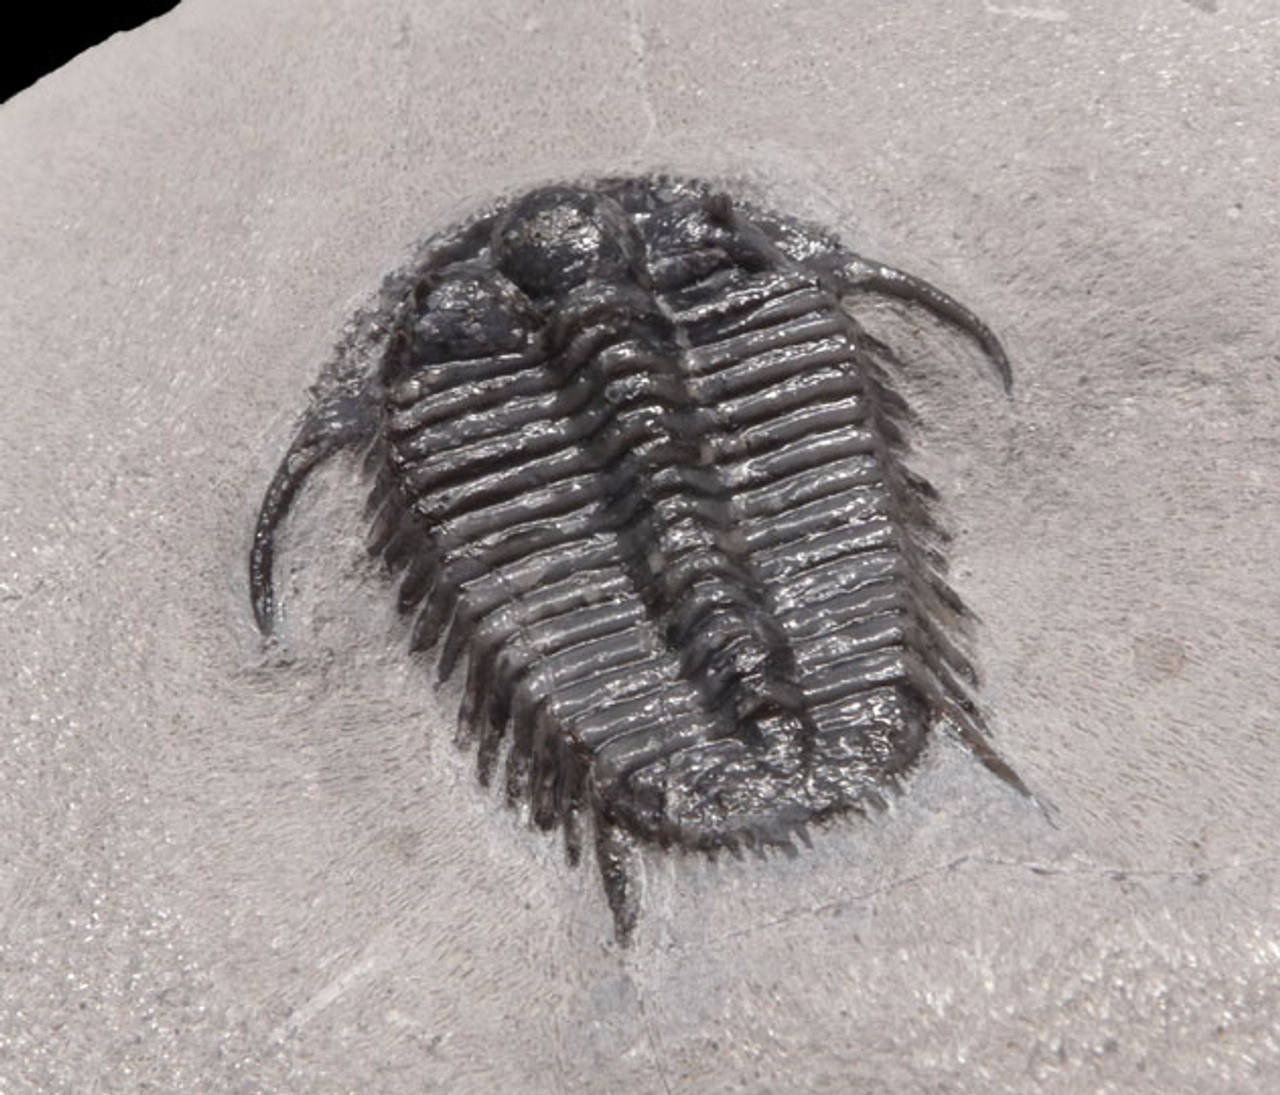 RARE CYPHASPIDES TRILOBITE WITH SUPERB PRESERVATION *TRX281